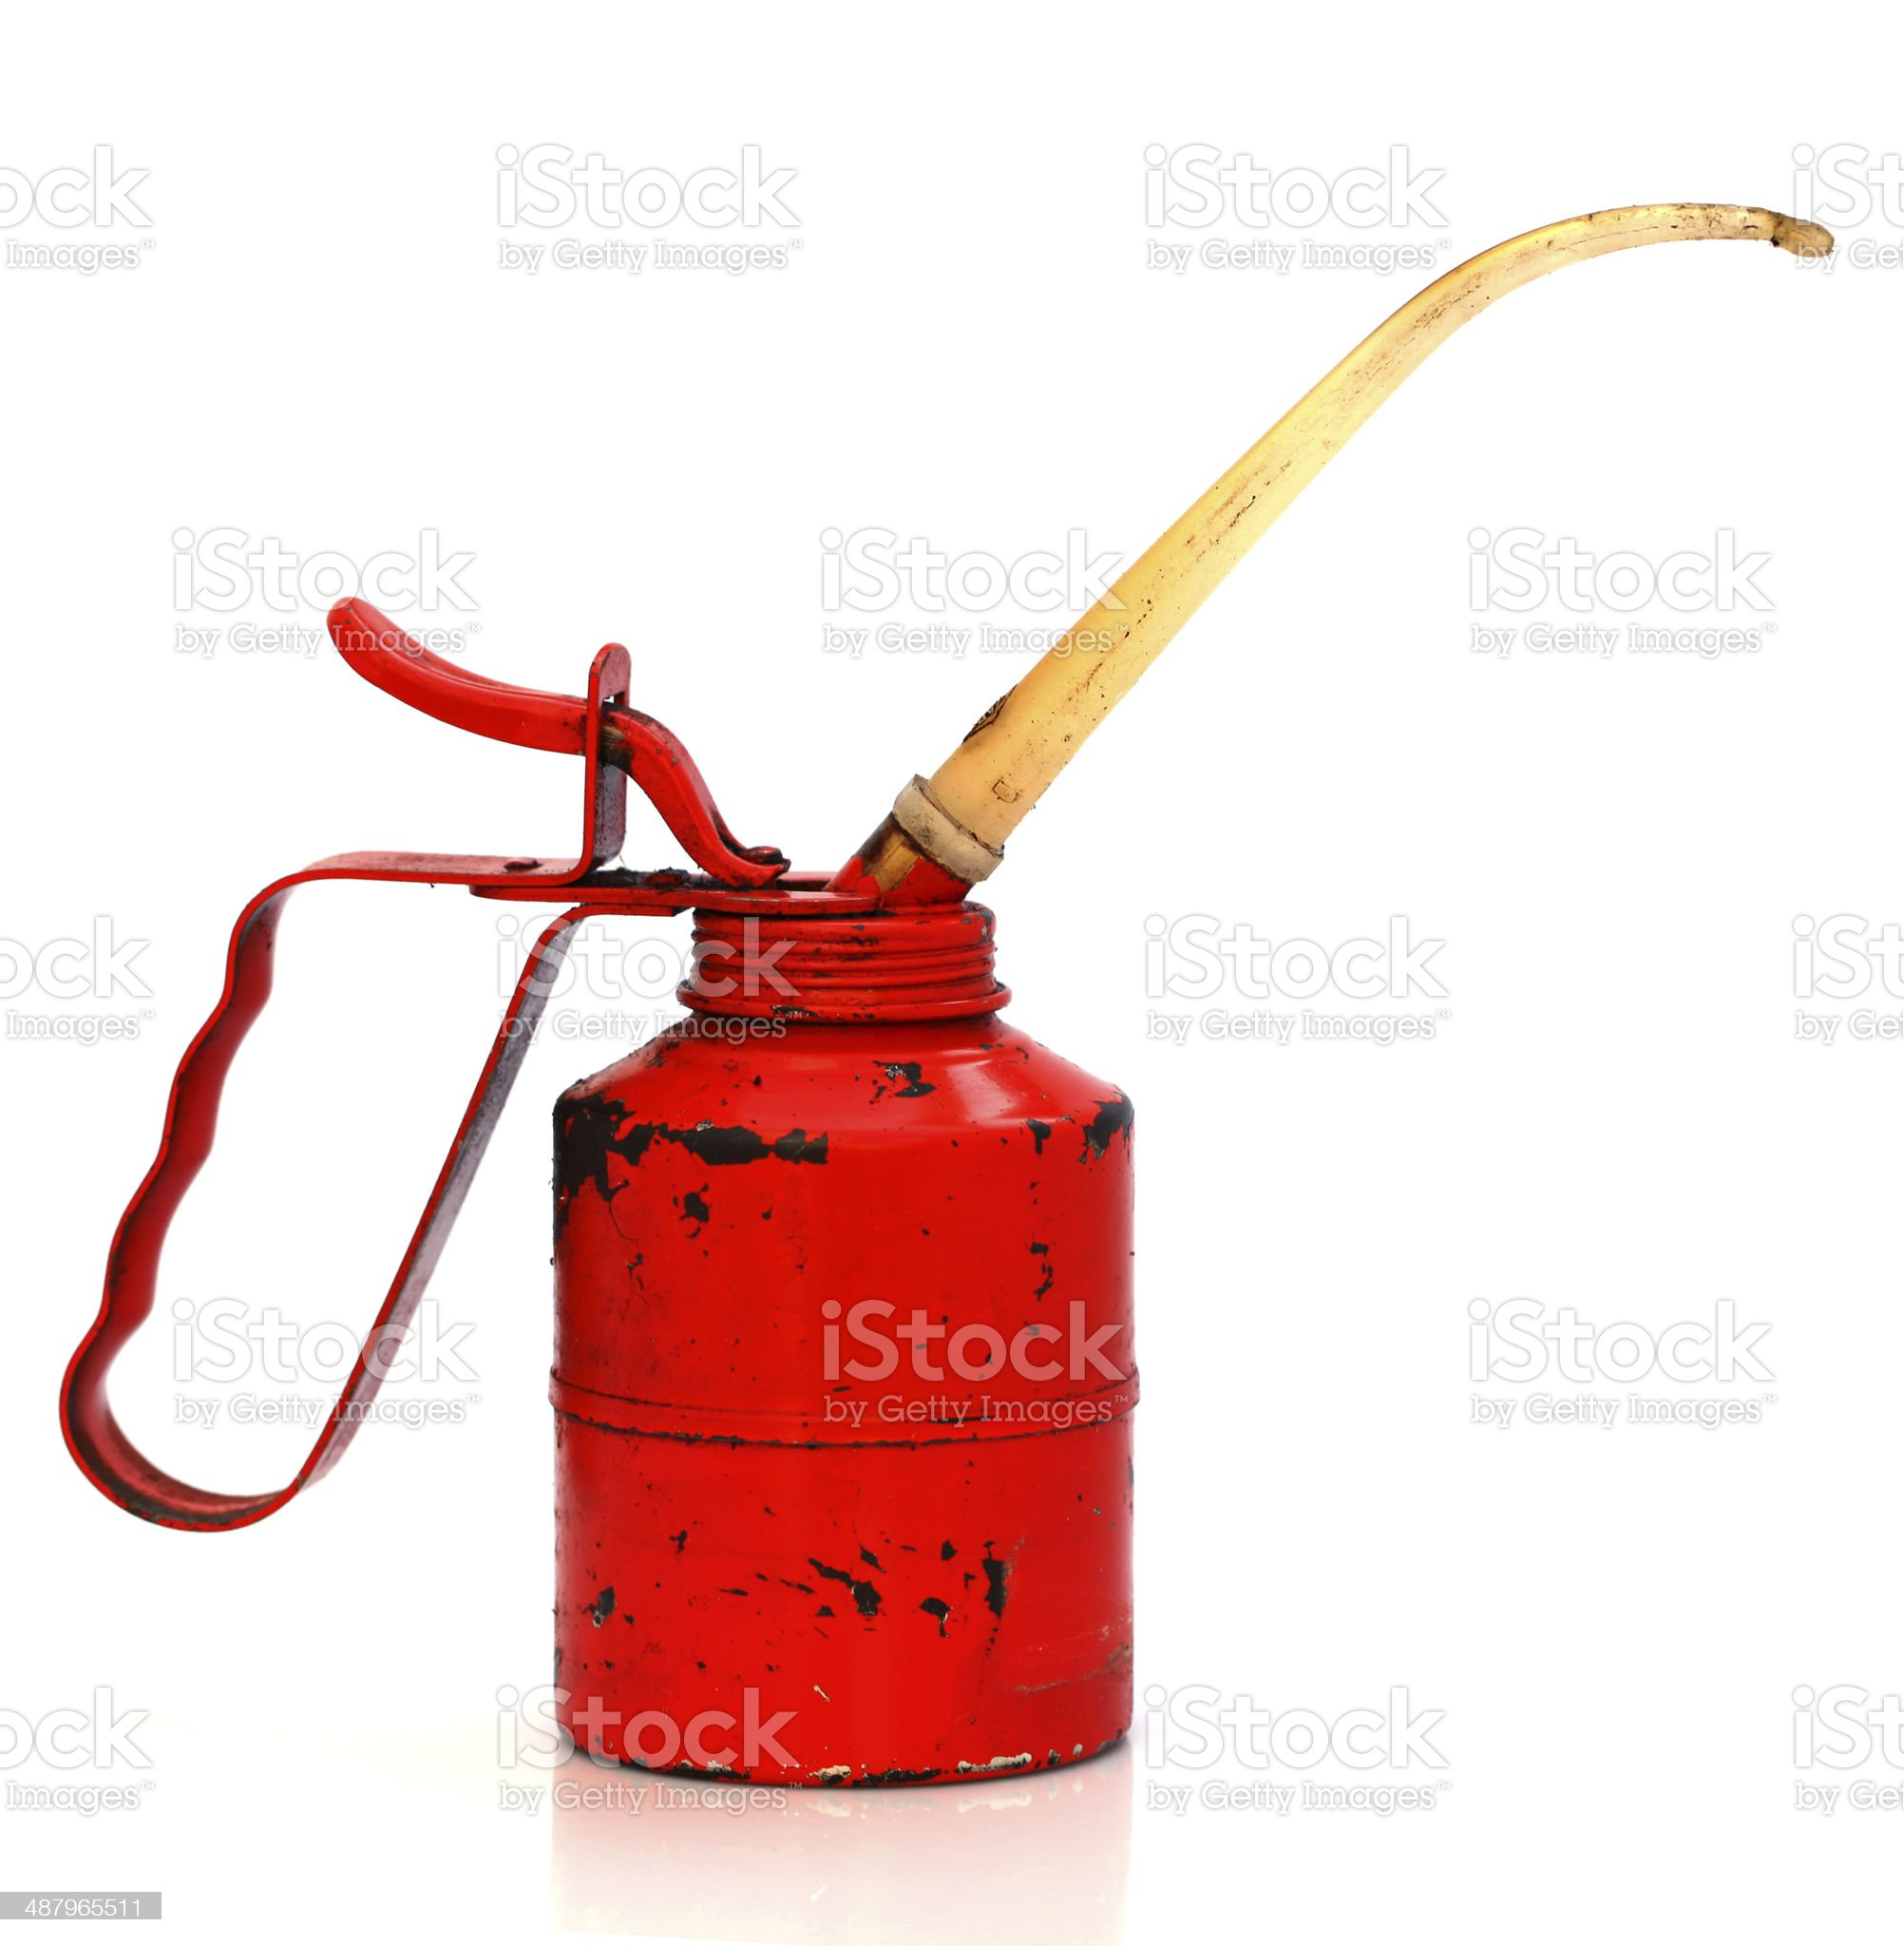 oil can royalty-free stock photo